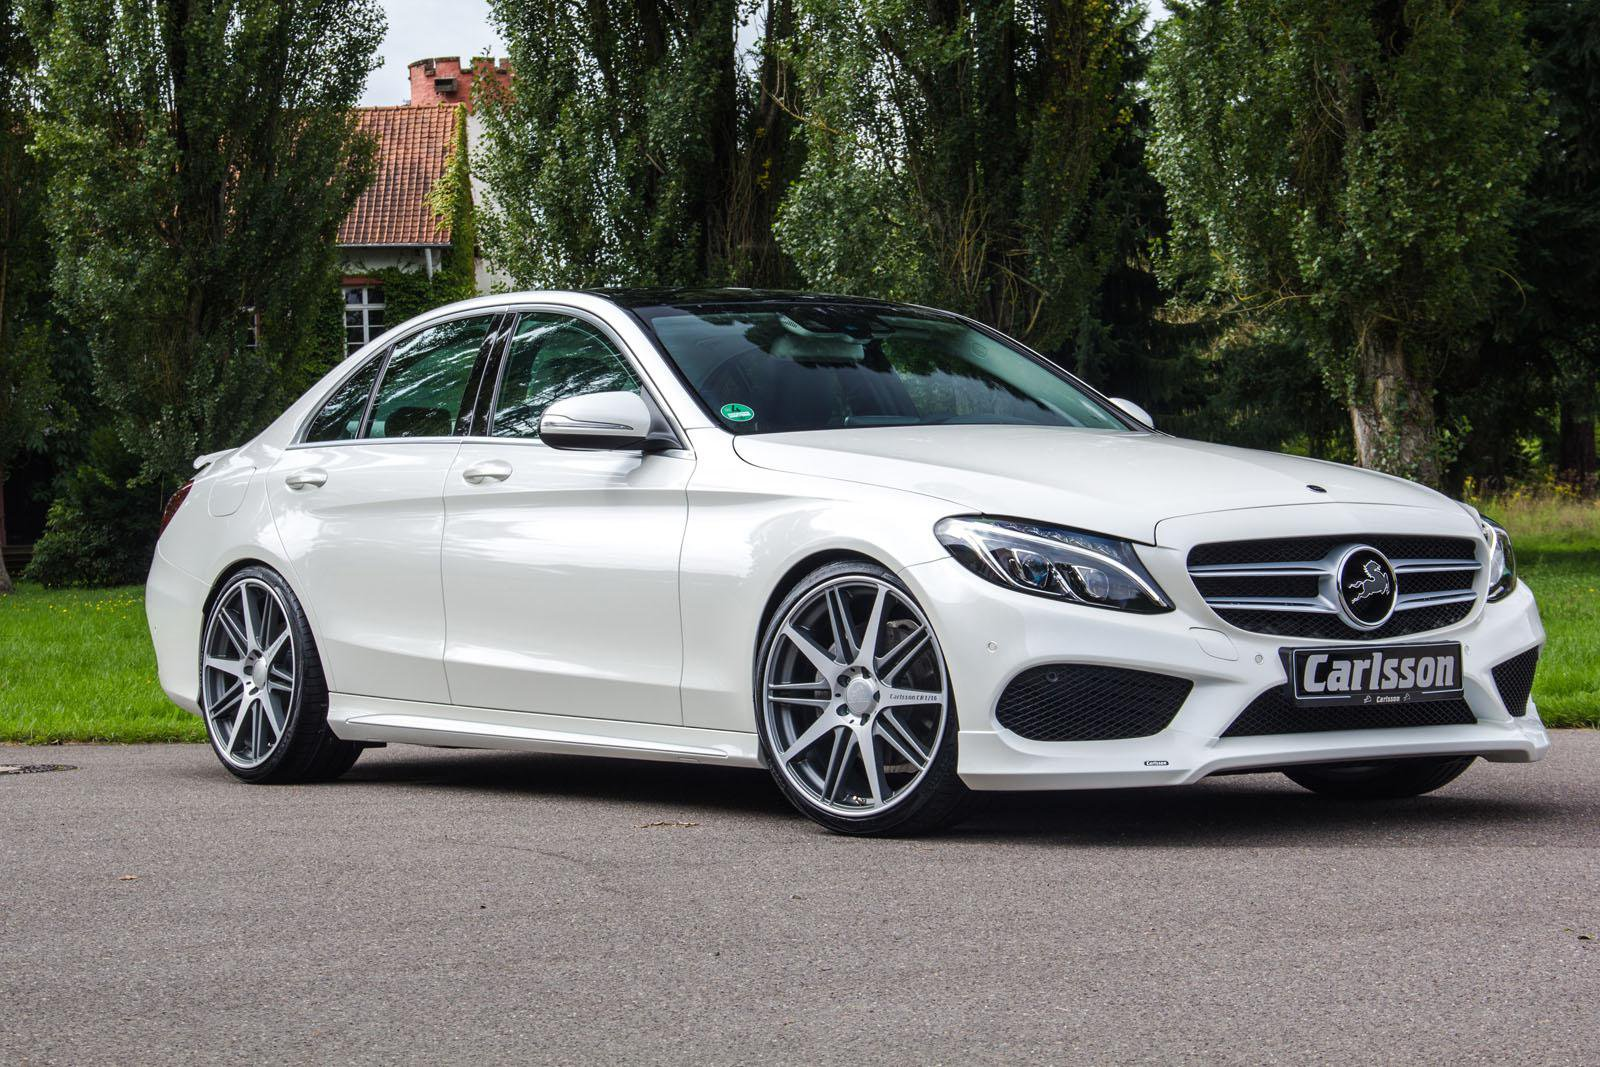 mercedez benz Receive luxury service from our expert sales and service team at mercedes-benz of austin close to georgetown, round rock, cedar park, and lakeway.